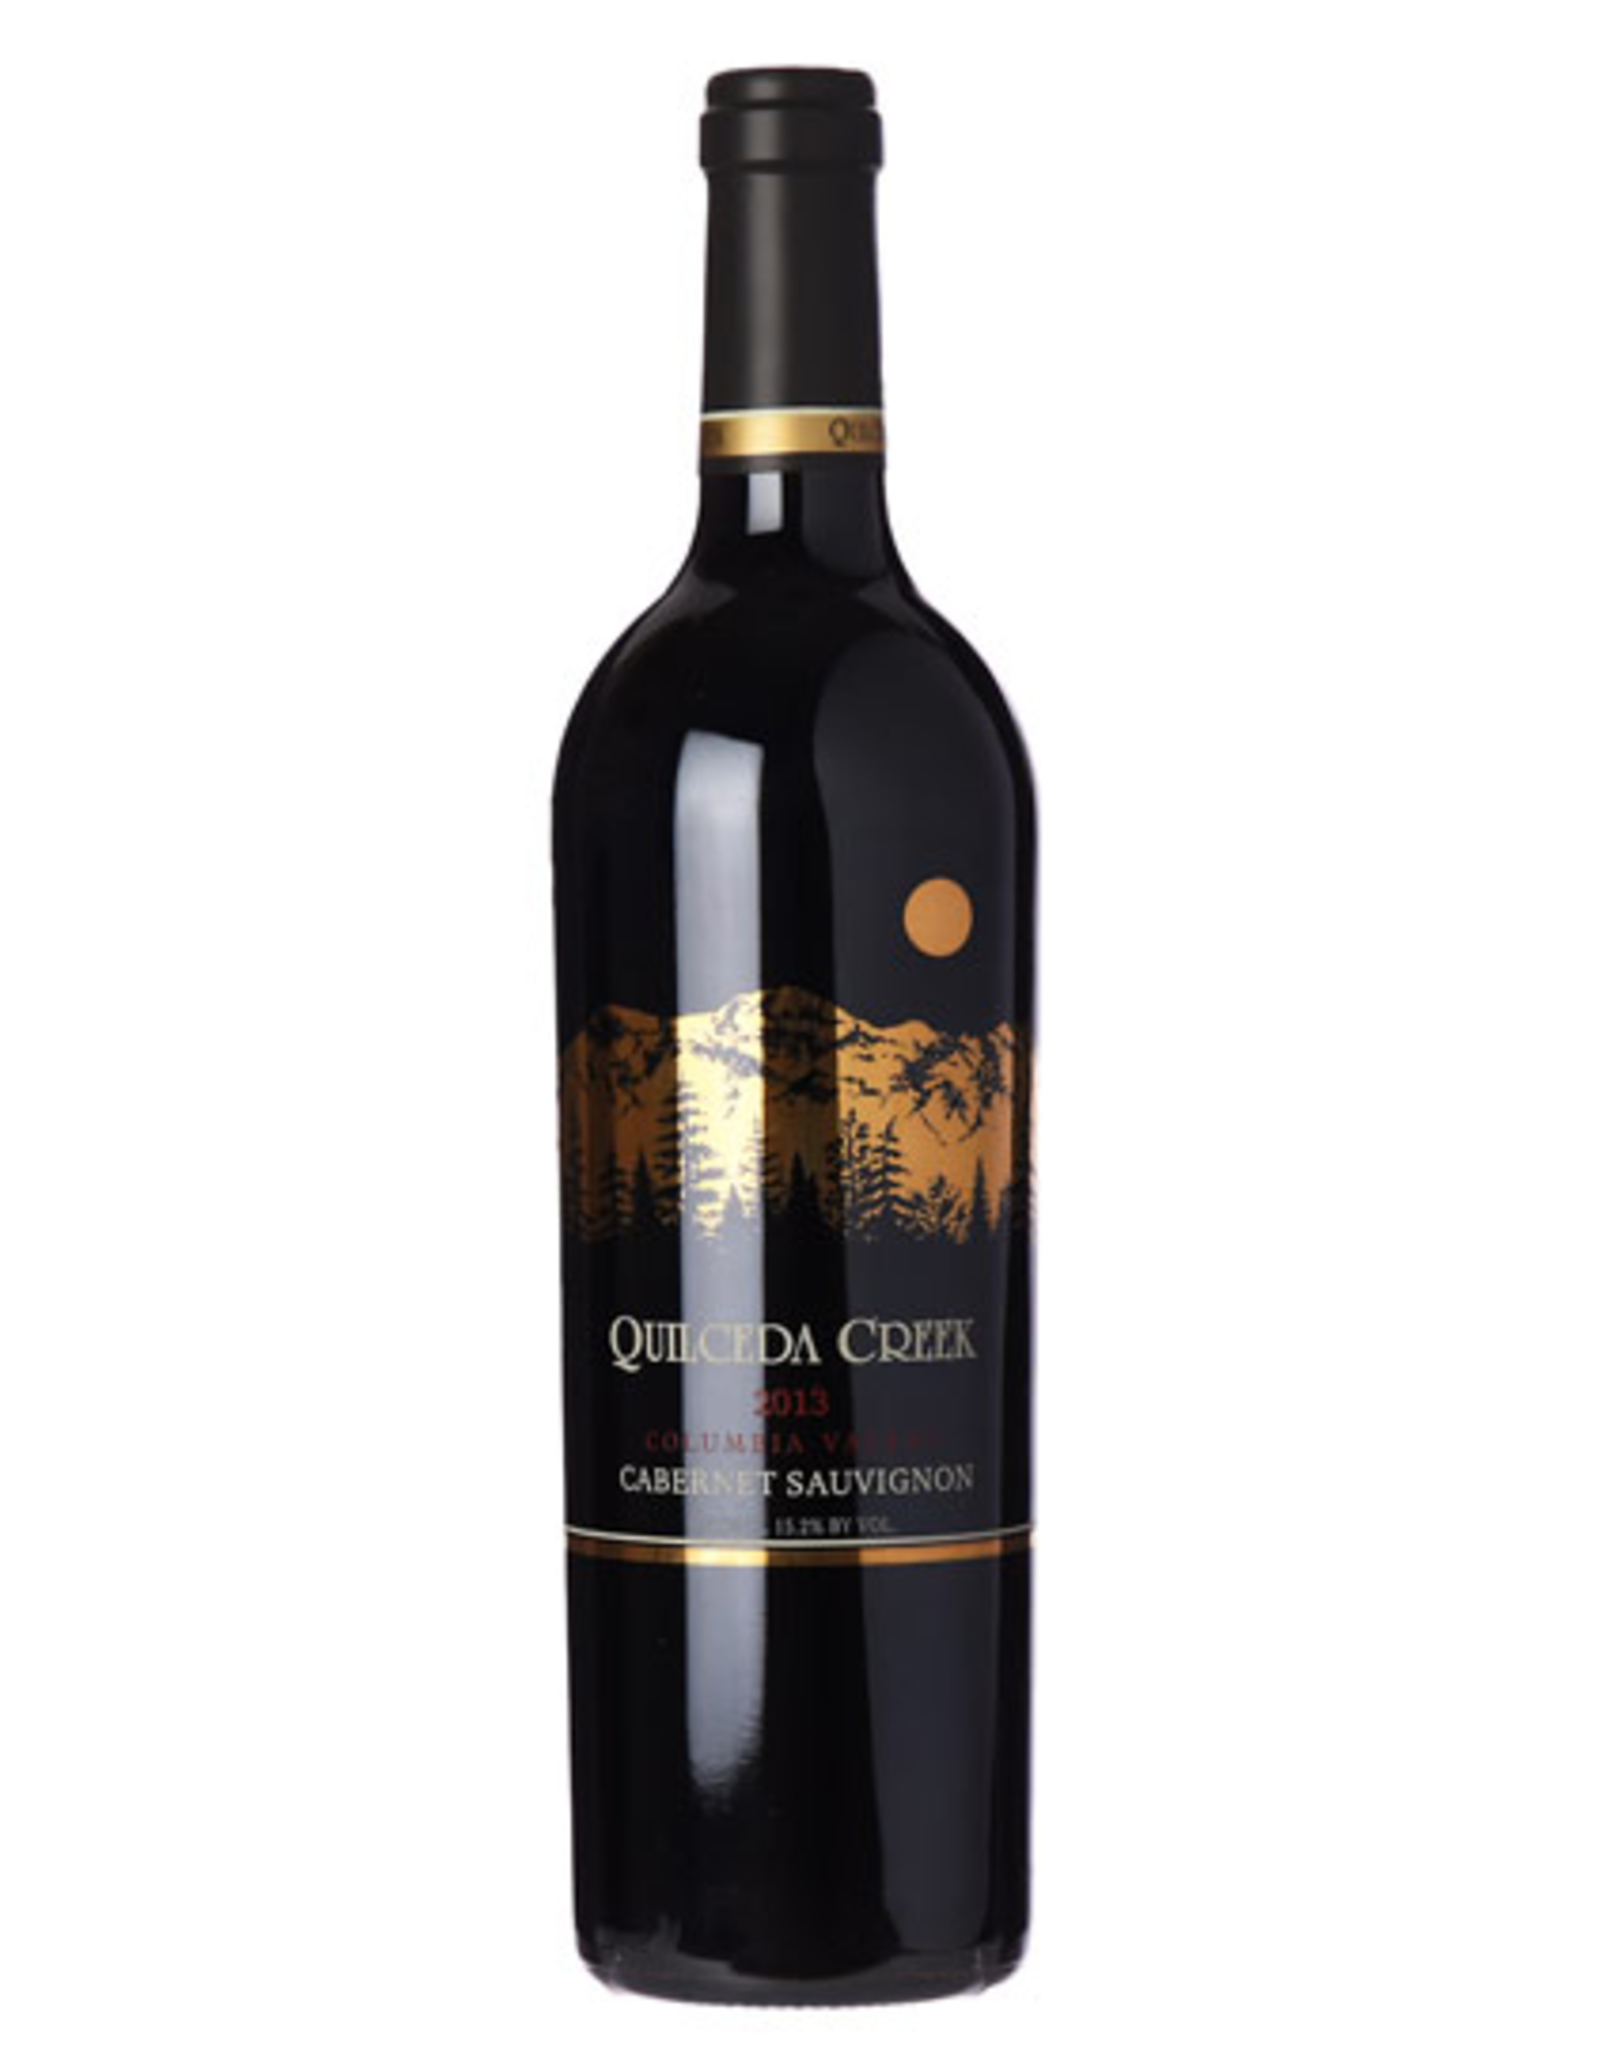 Red Wine 2013, Quilceda Creek, Cabernet Sauvignon, Multi-regional Blend, Columbia Valley, Washington,15.2% Alc, CT94, RP99